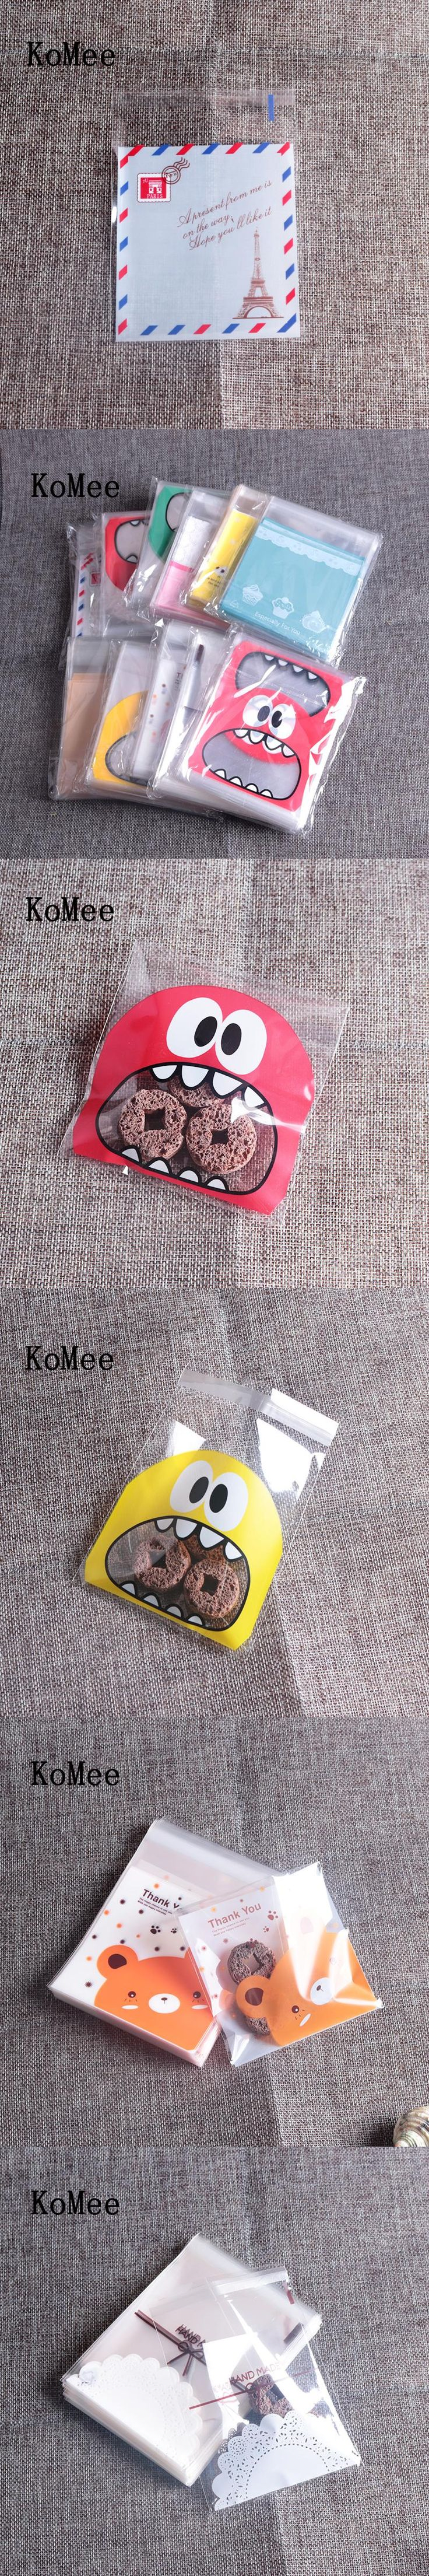 Cute Cookie Platic OPP Bag 7*7+3cm Biscuit Plastic Pouches Big Mouth 500pcs/lot Many Style You Can Choose Small Bags Wholesale